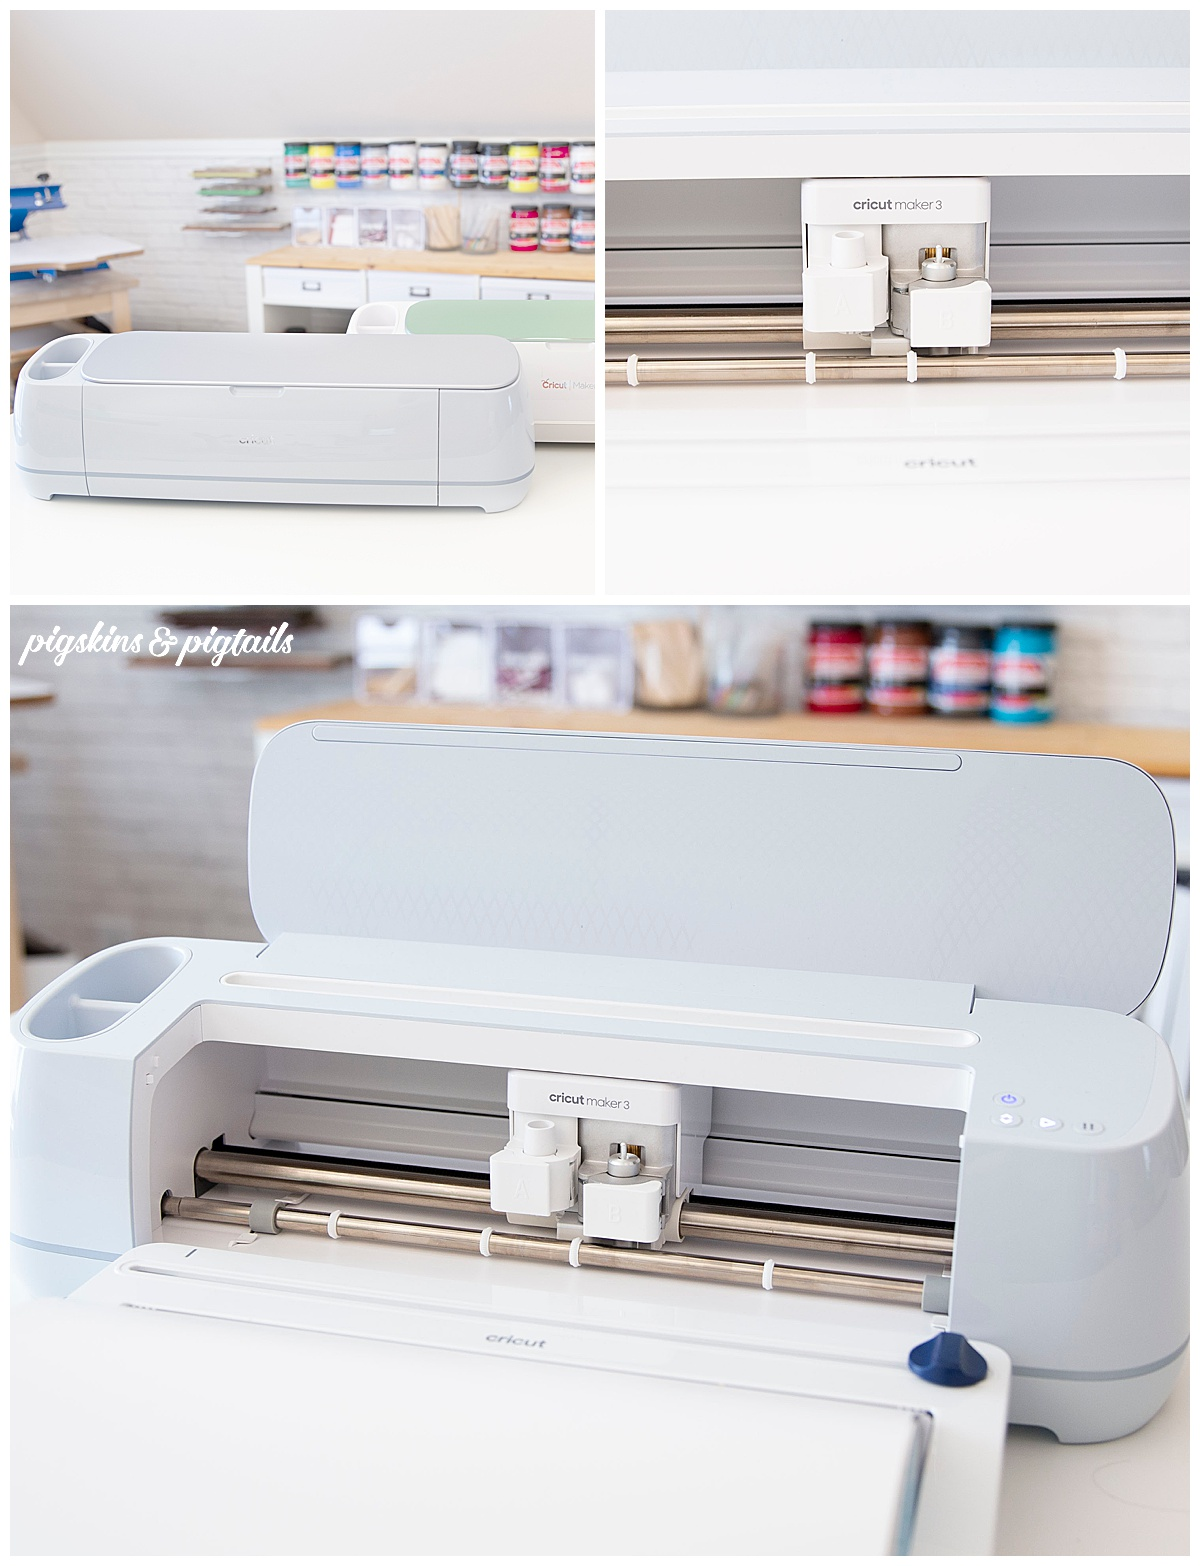 cricut maker 3 details pricing how to